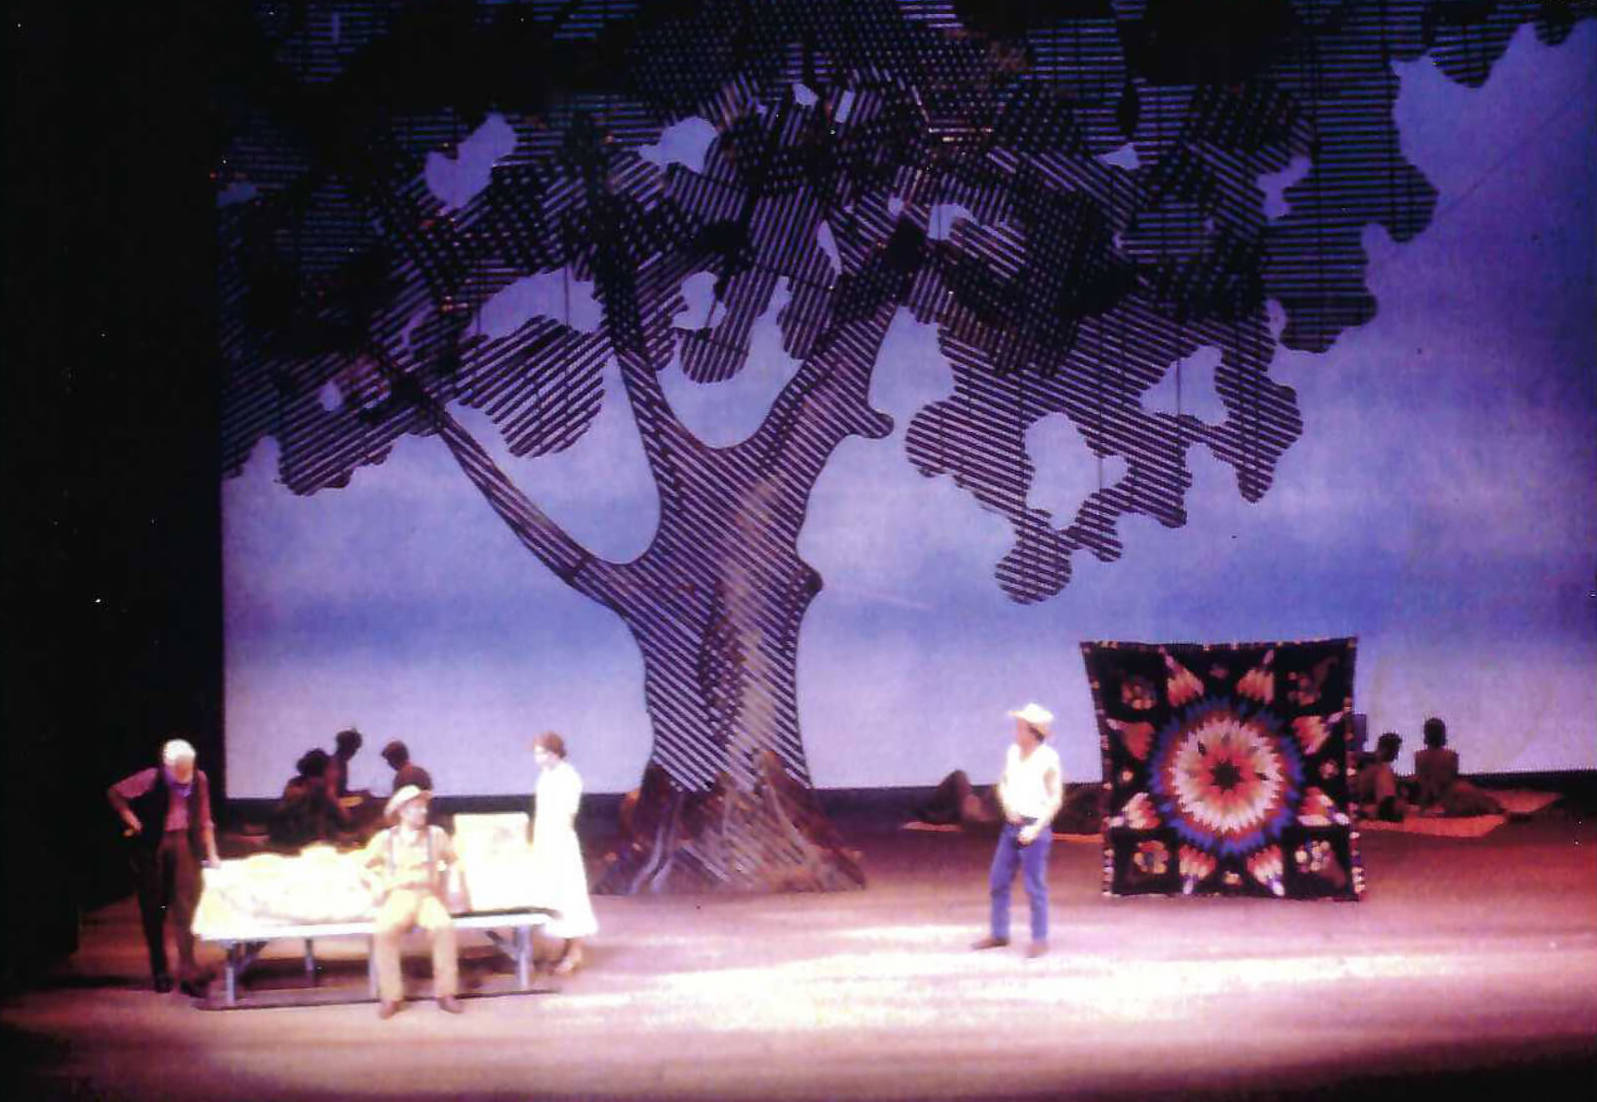 110 In the Shade at New York City Opera. Set by Michael Anania. Actors are under a large tree and there is also a quilt onstage.